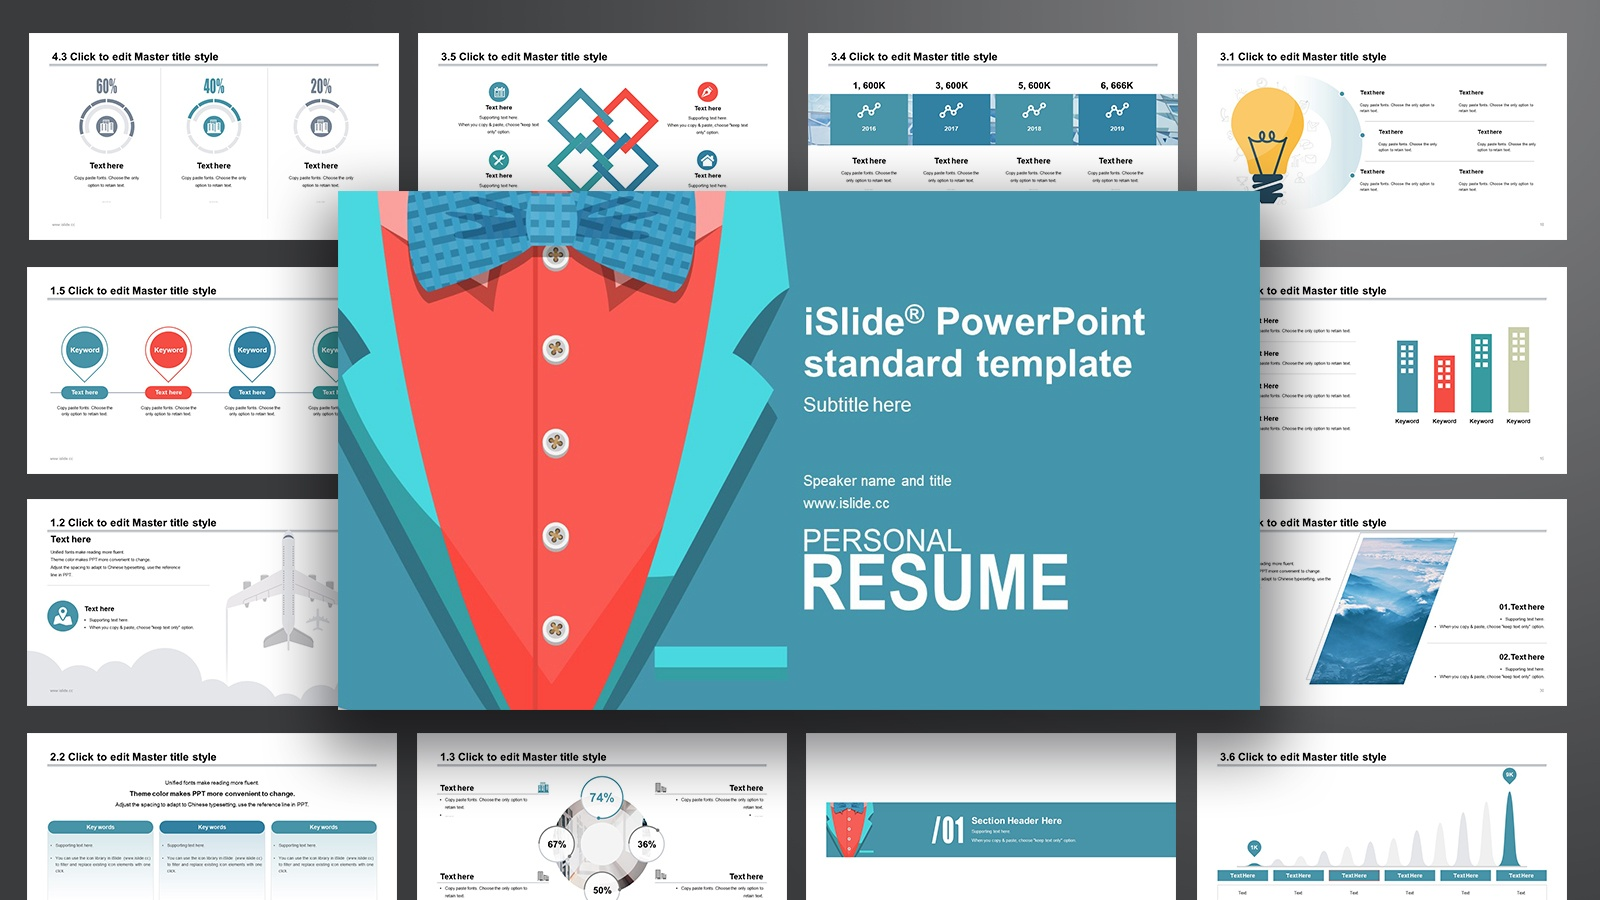 What Is The Best Website Available For Downloading Free Powerpoint